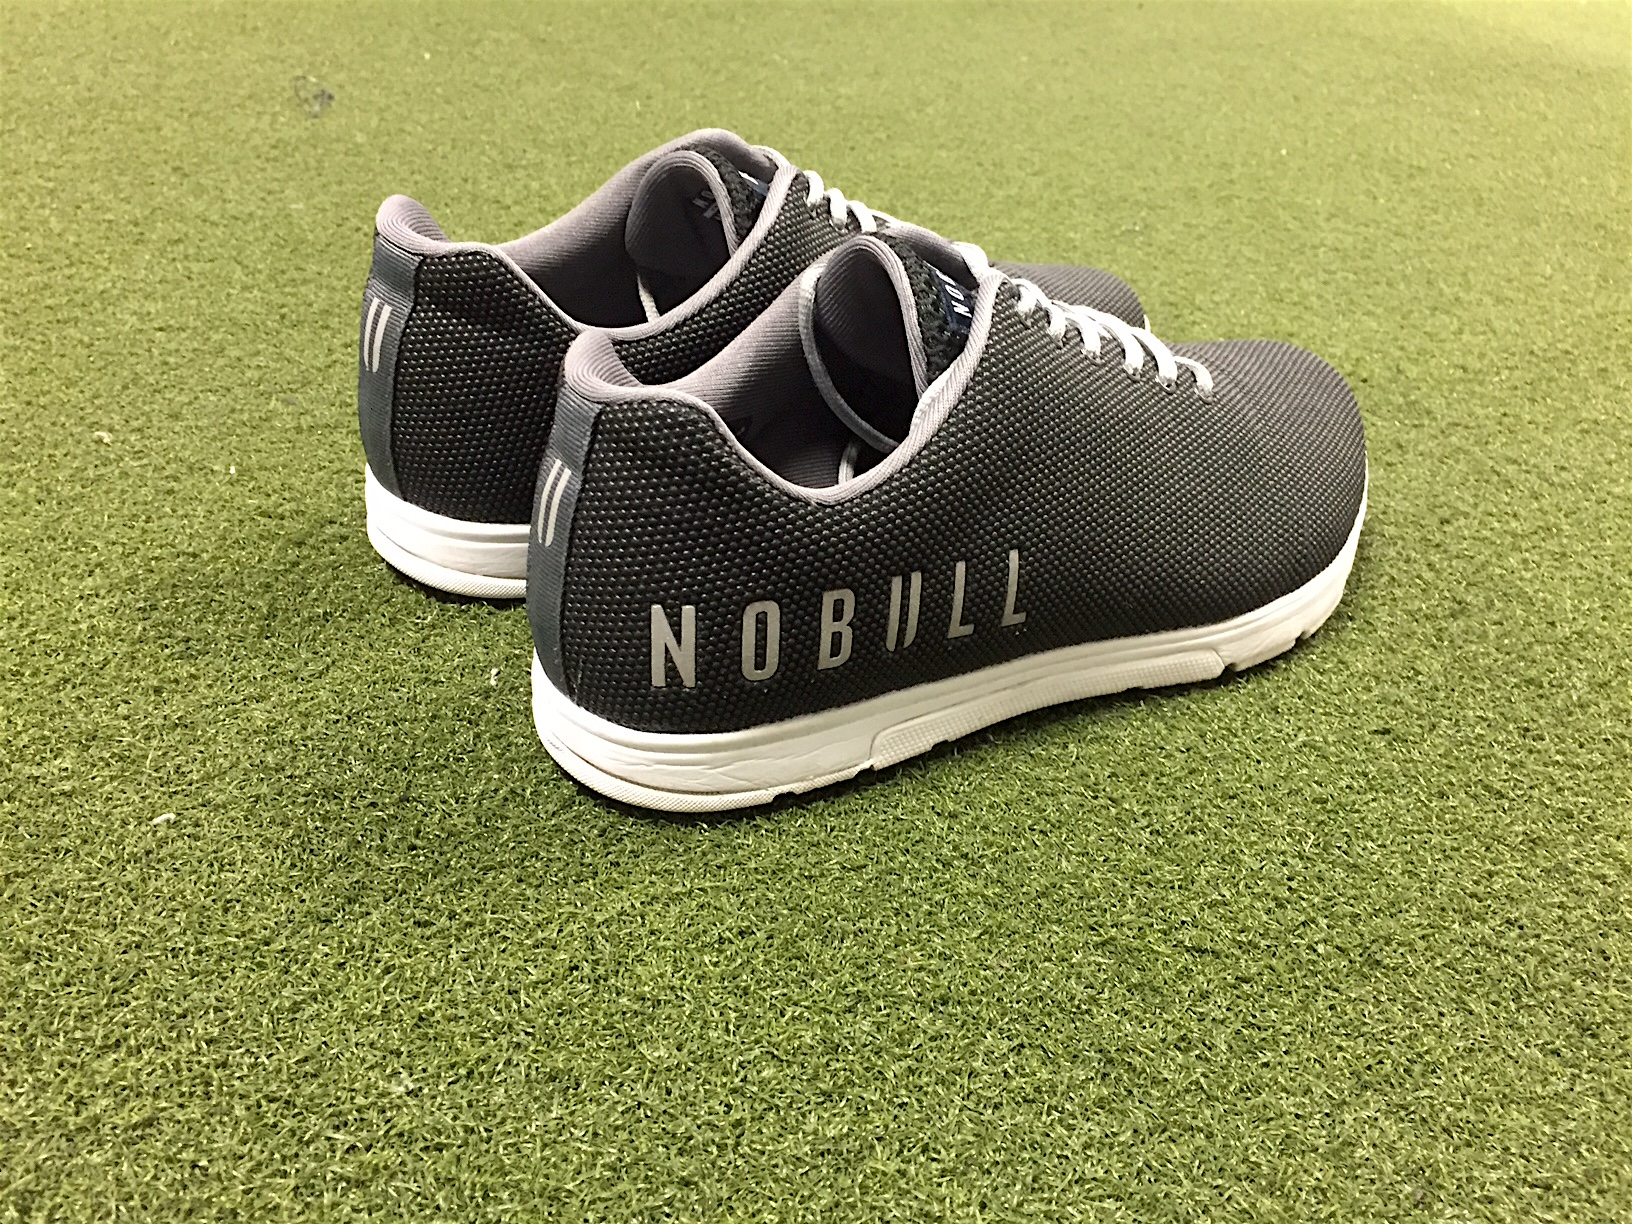 nobull trainers review